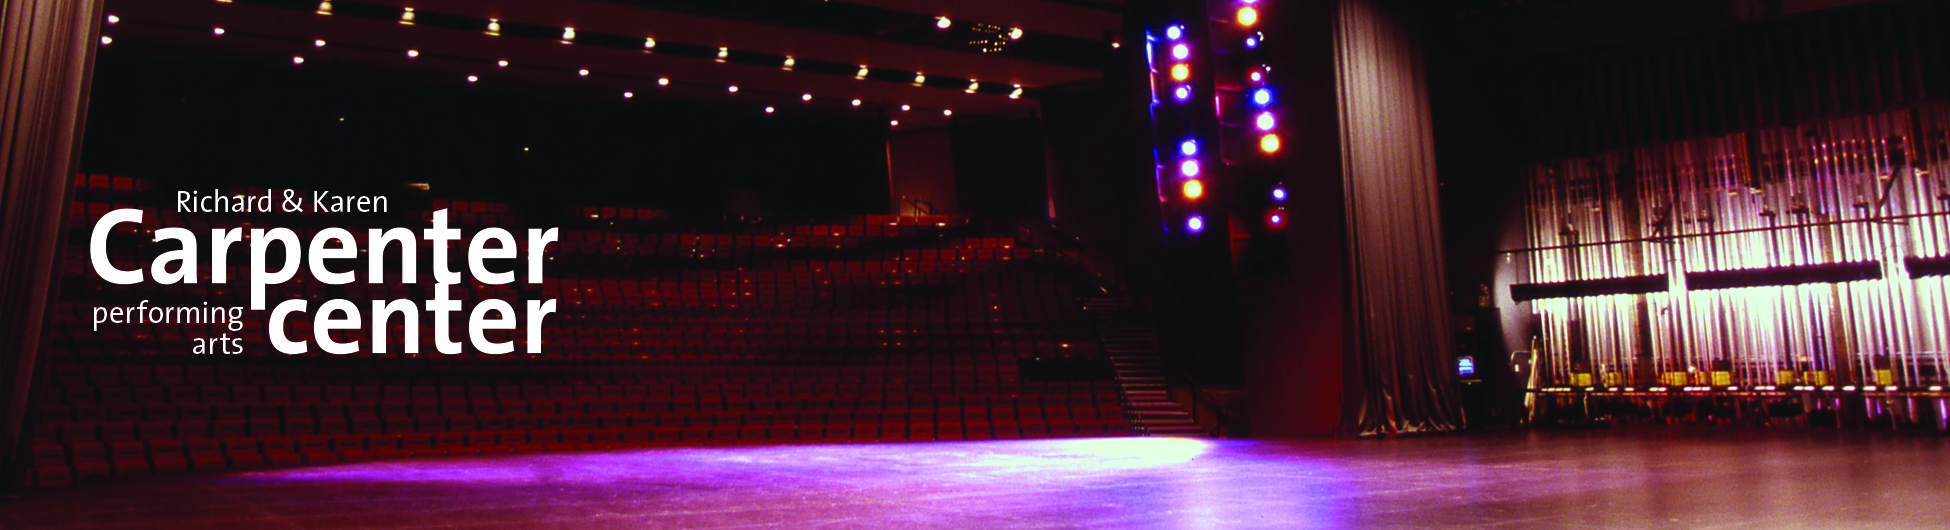 Carpenter Center logo on an image of the stage